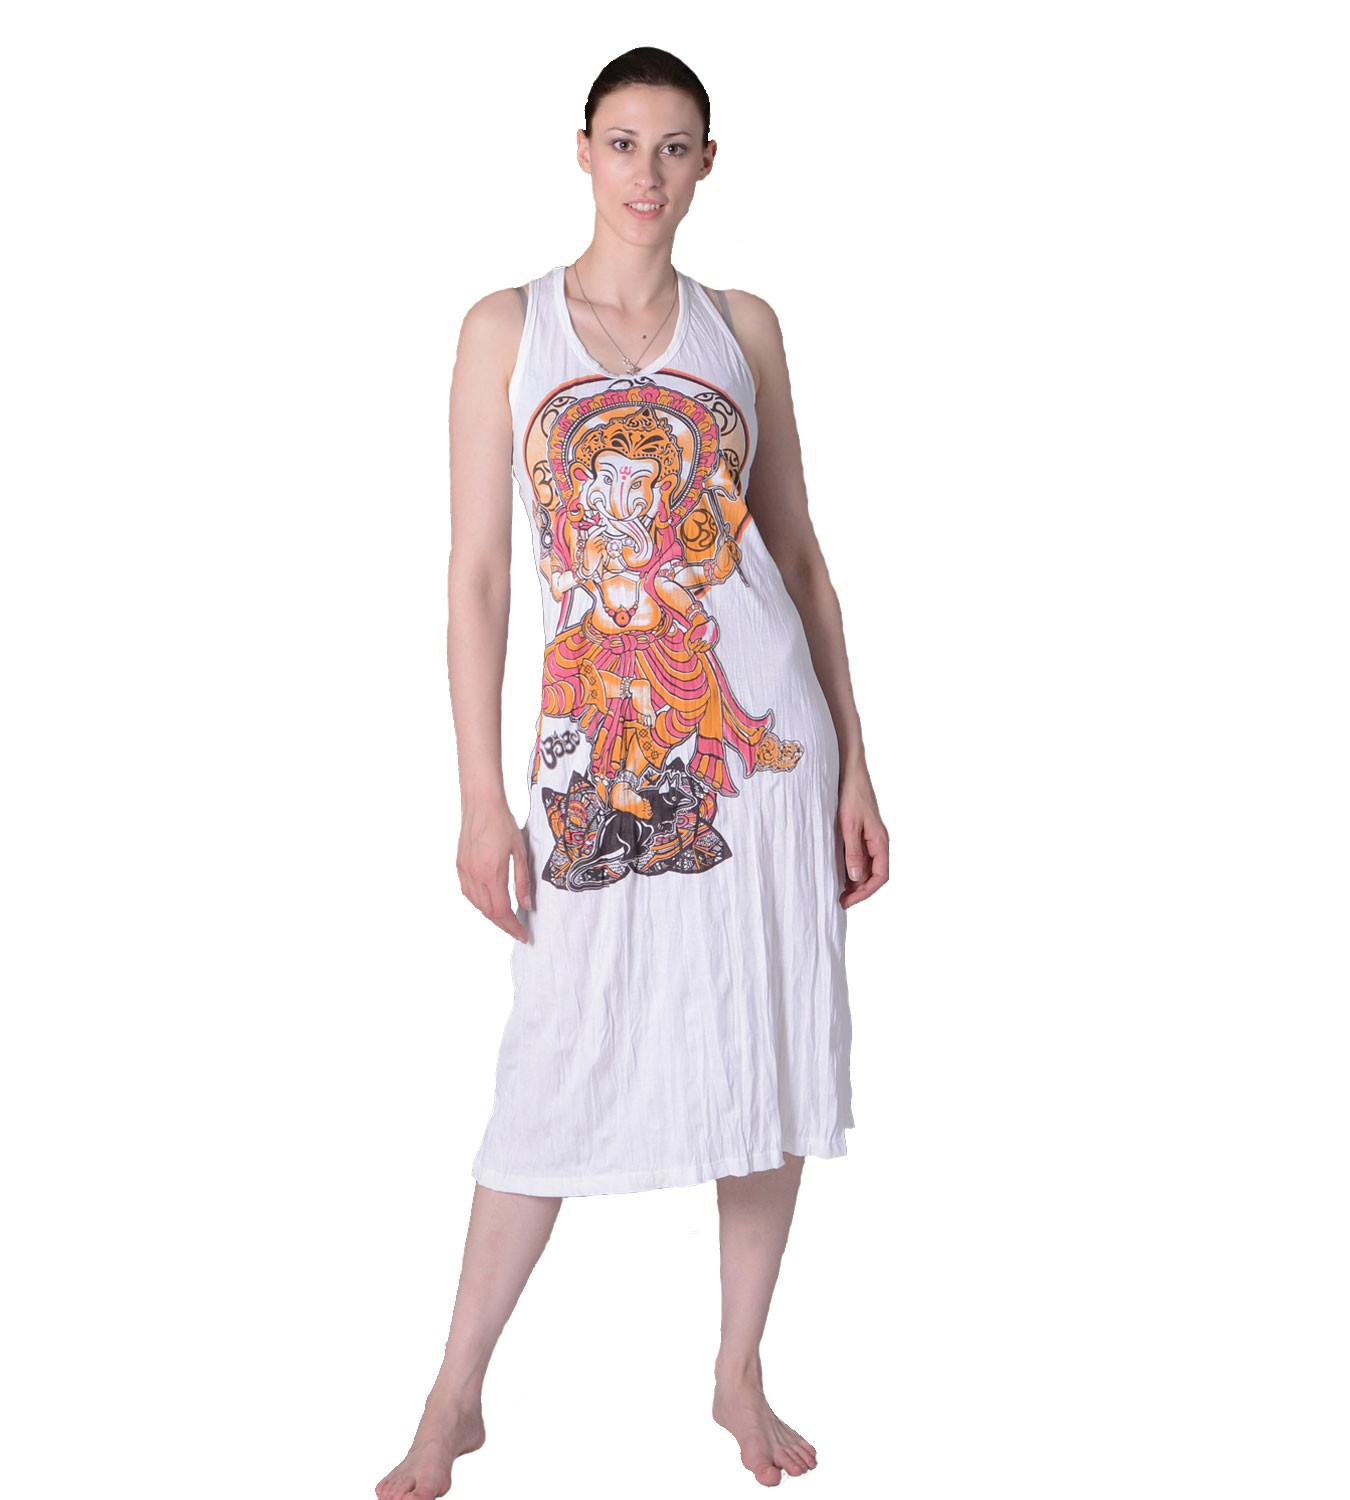 ganesha sommerkleid strandkleid in wei retro hippie 70er t shirt goa sure hippie. Black Bedroom Furniture Sets. Home Design Ideas